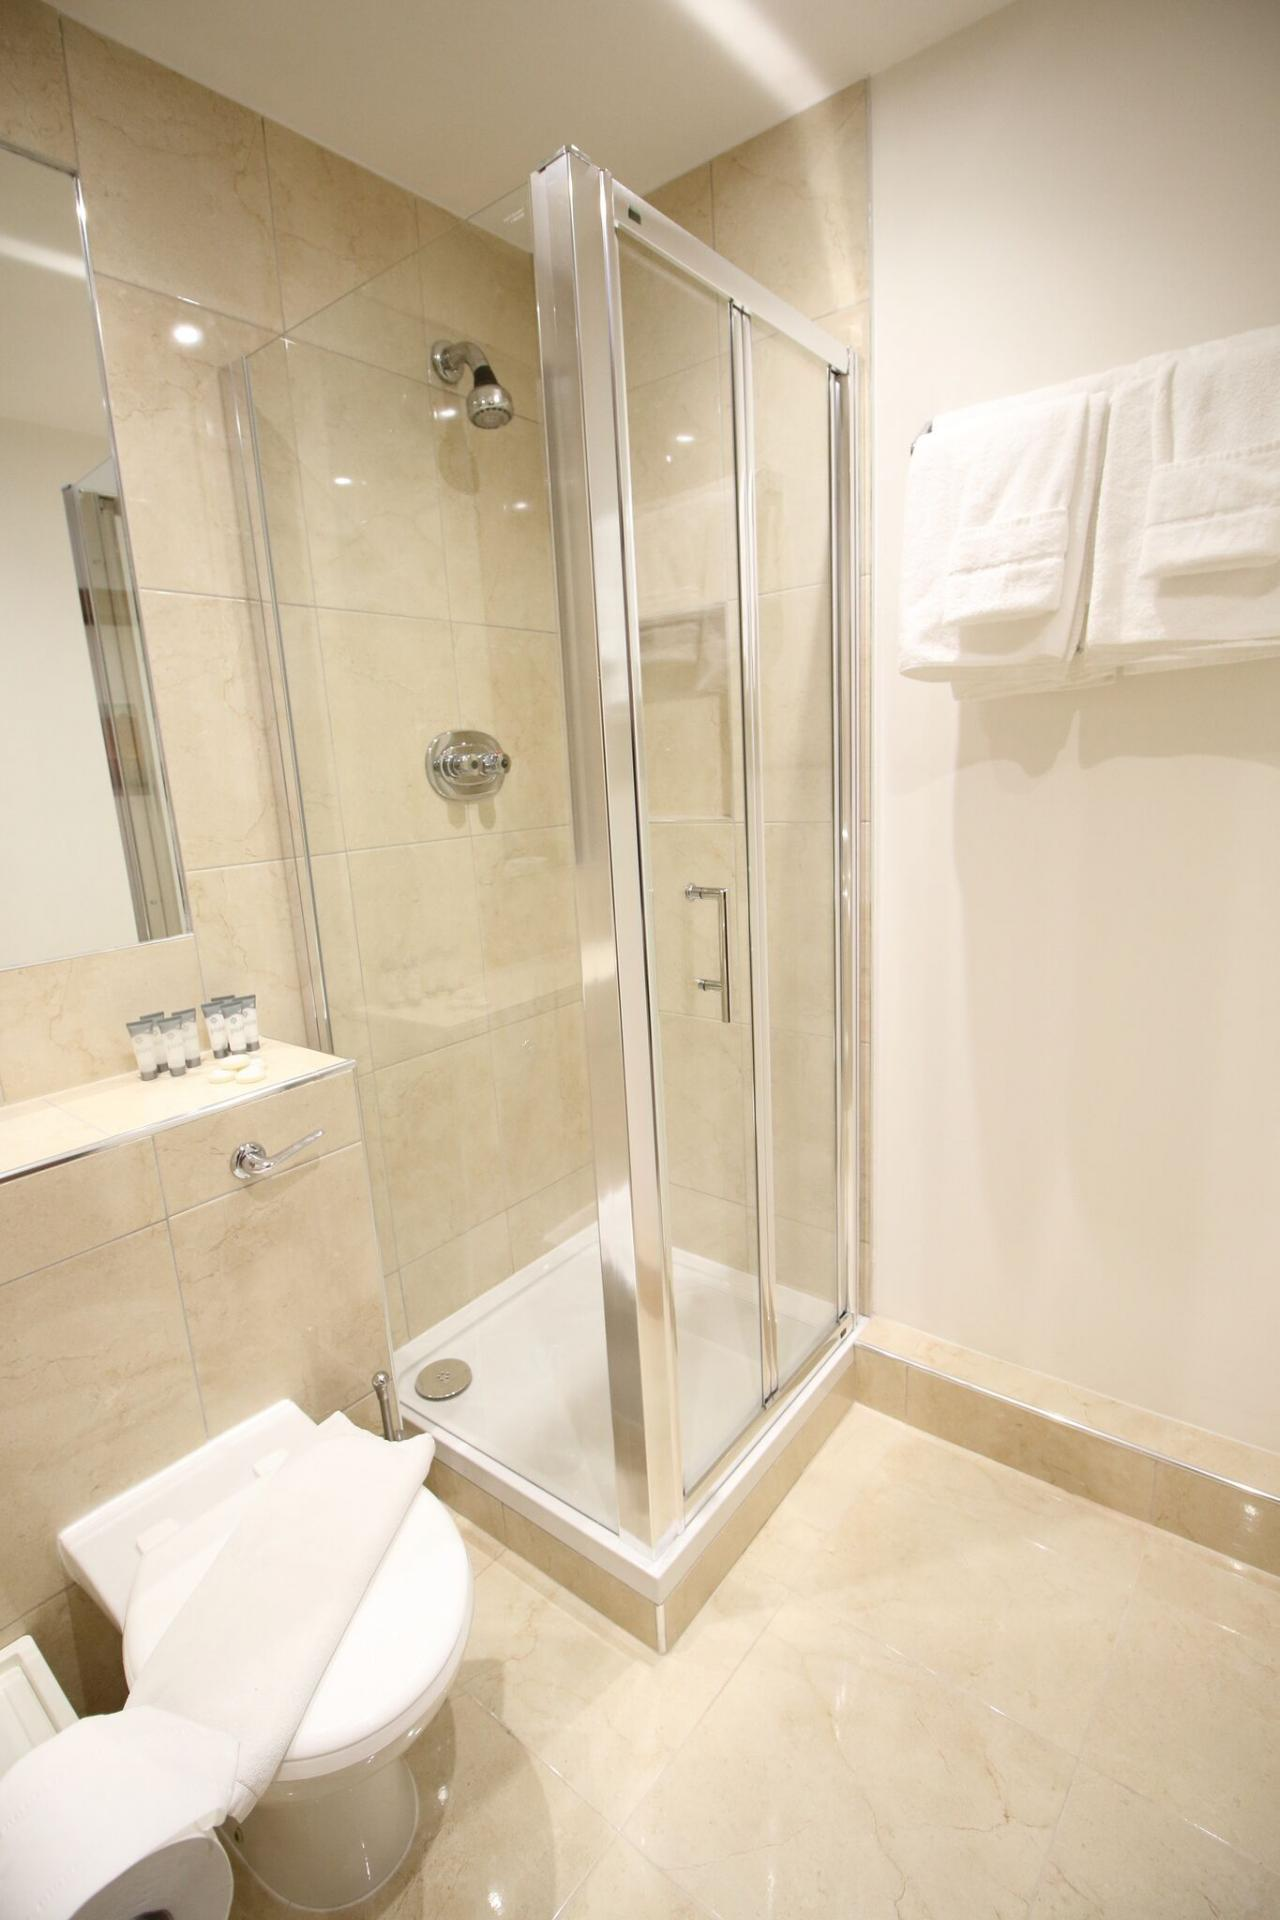 Bathroom with shower at O'Connell Bridge Apartments, Centre, Dublin